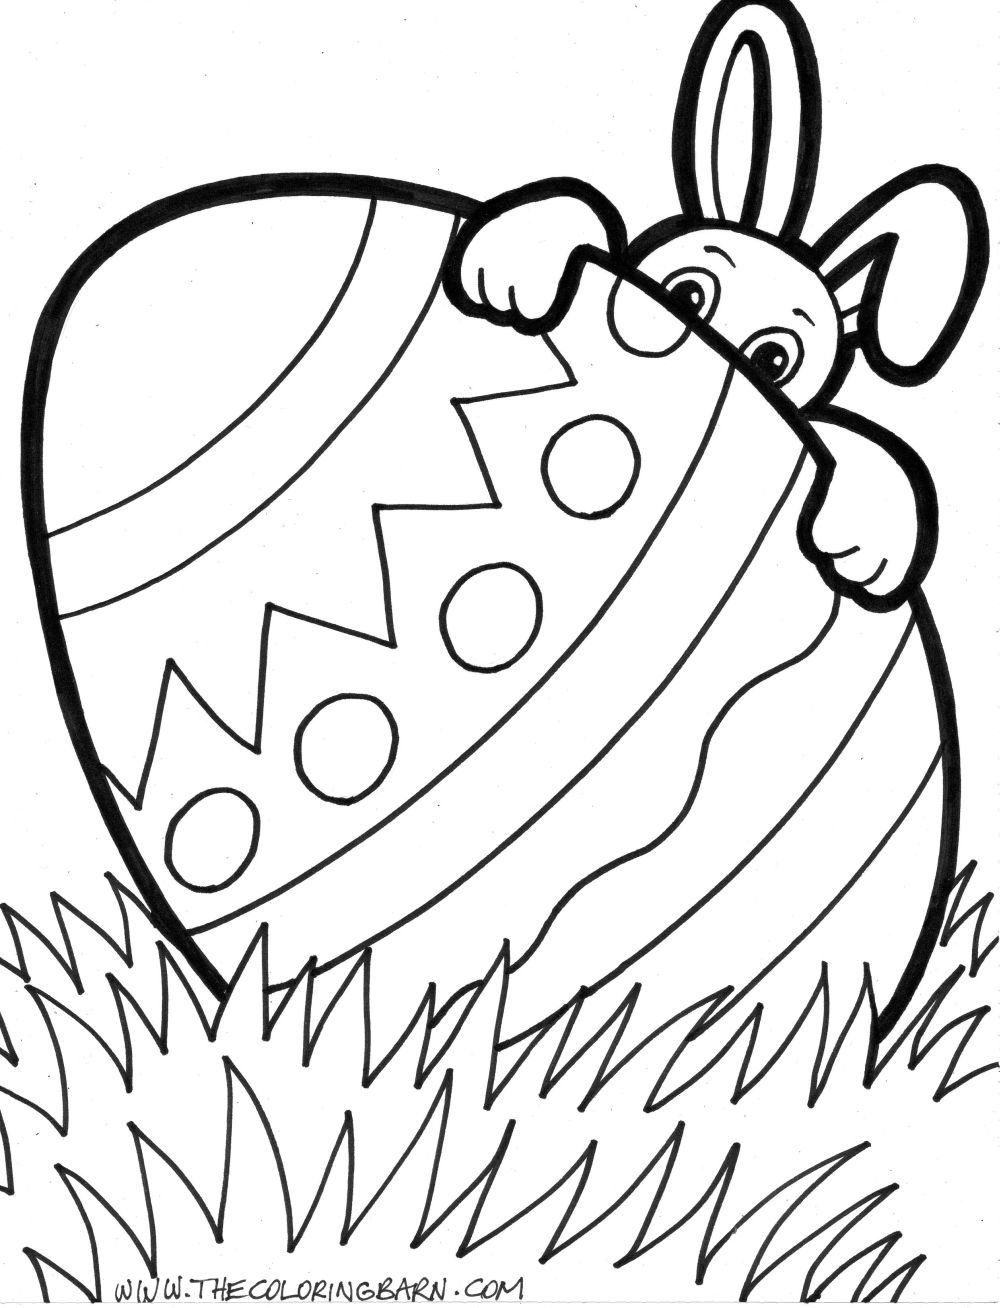 Monster Easter Egg Coloring Page Chics Gathering Free Easter Coloring Pages Easter Bunny Colouring Easter Coloring Pages Printable